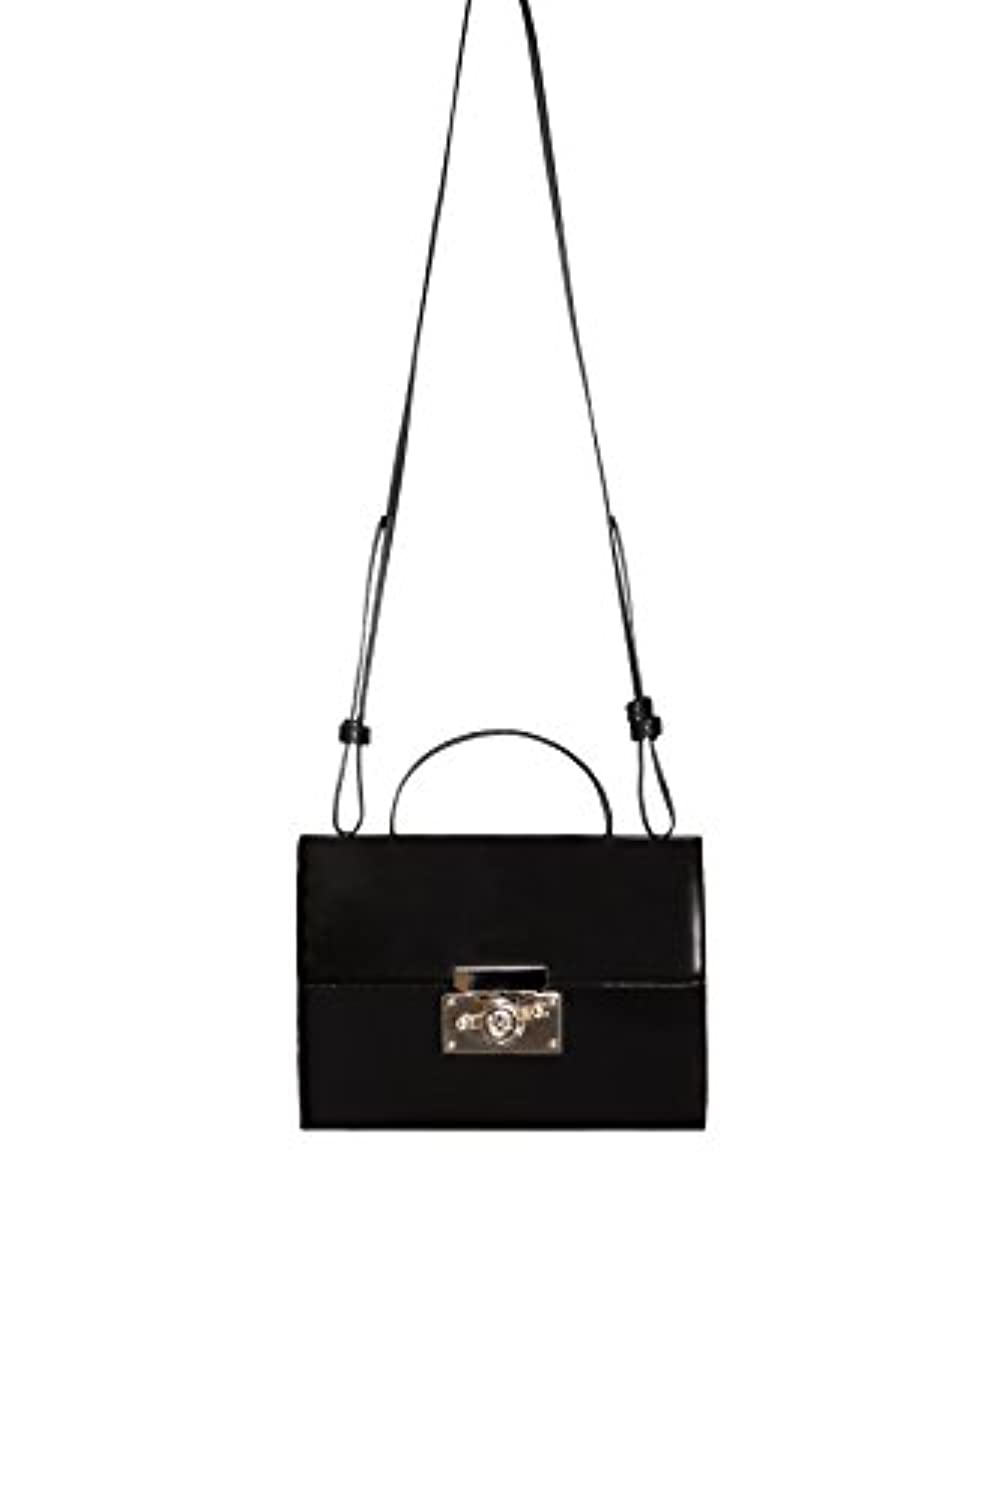 Subella London Black Leather 5 compartment structured tote with detachable shoudler strap Sabrina Handbag handmade...